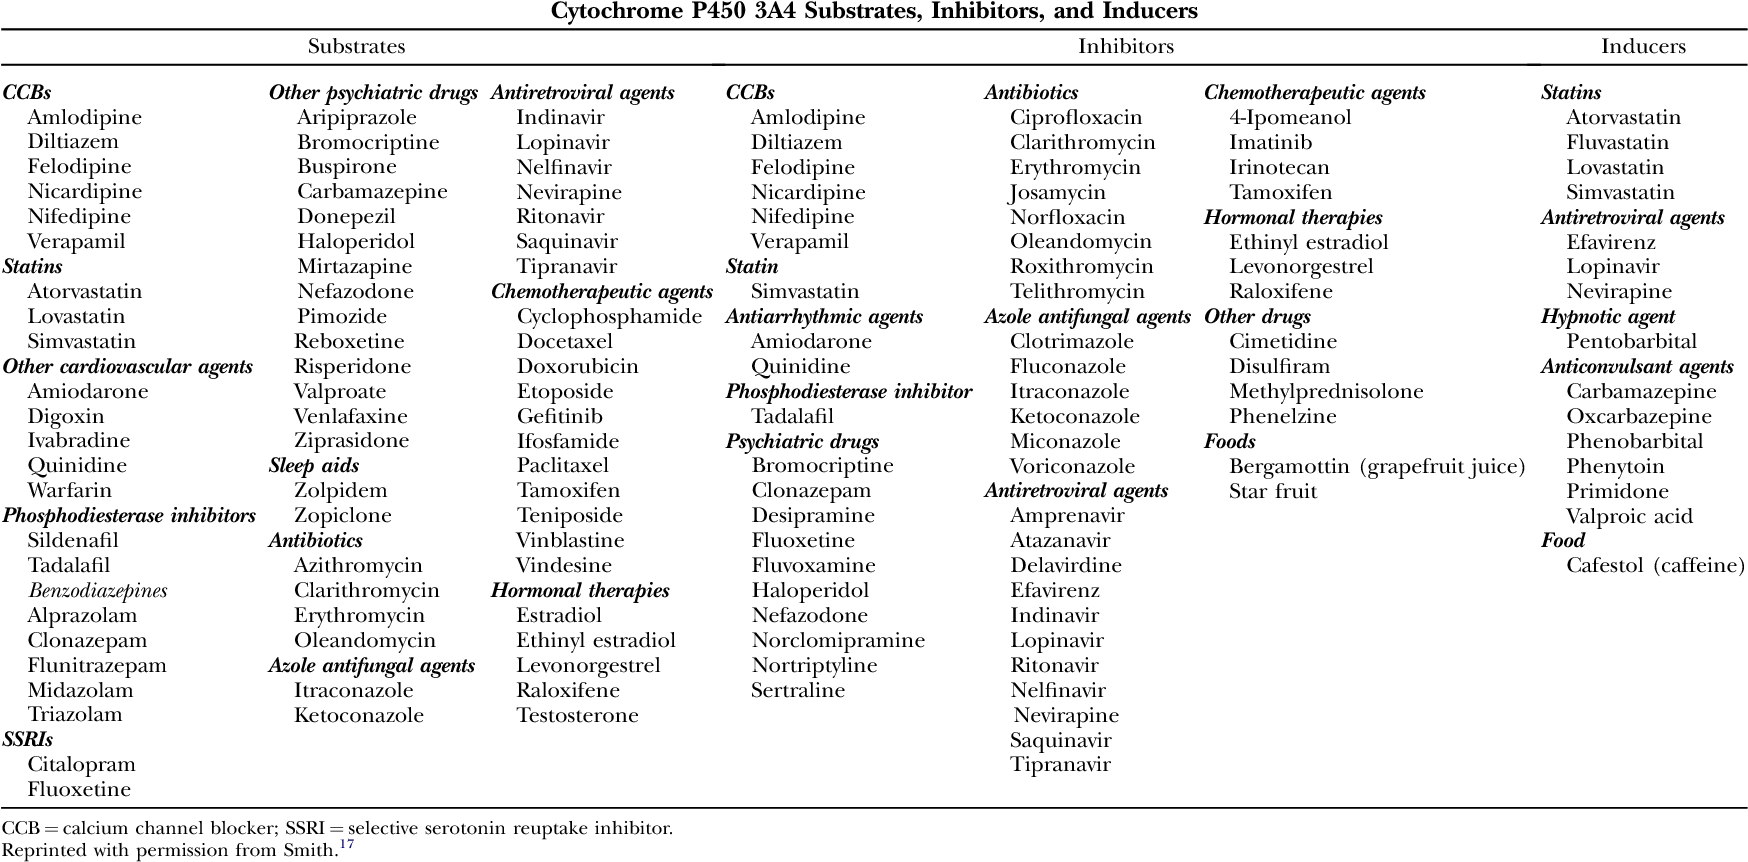 Table 3 Cytochrome P450 3A4 Substrates, Inhibitors, and Inducers